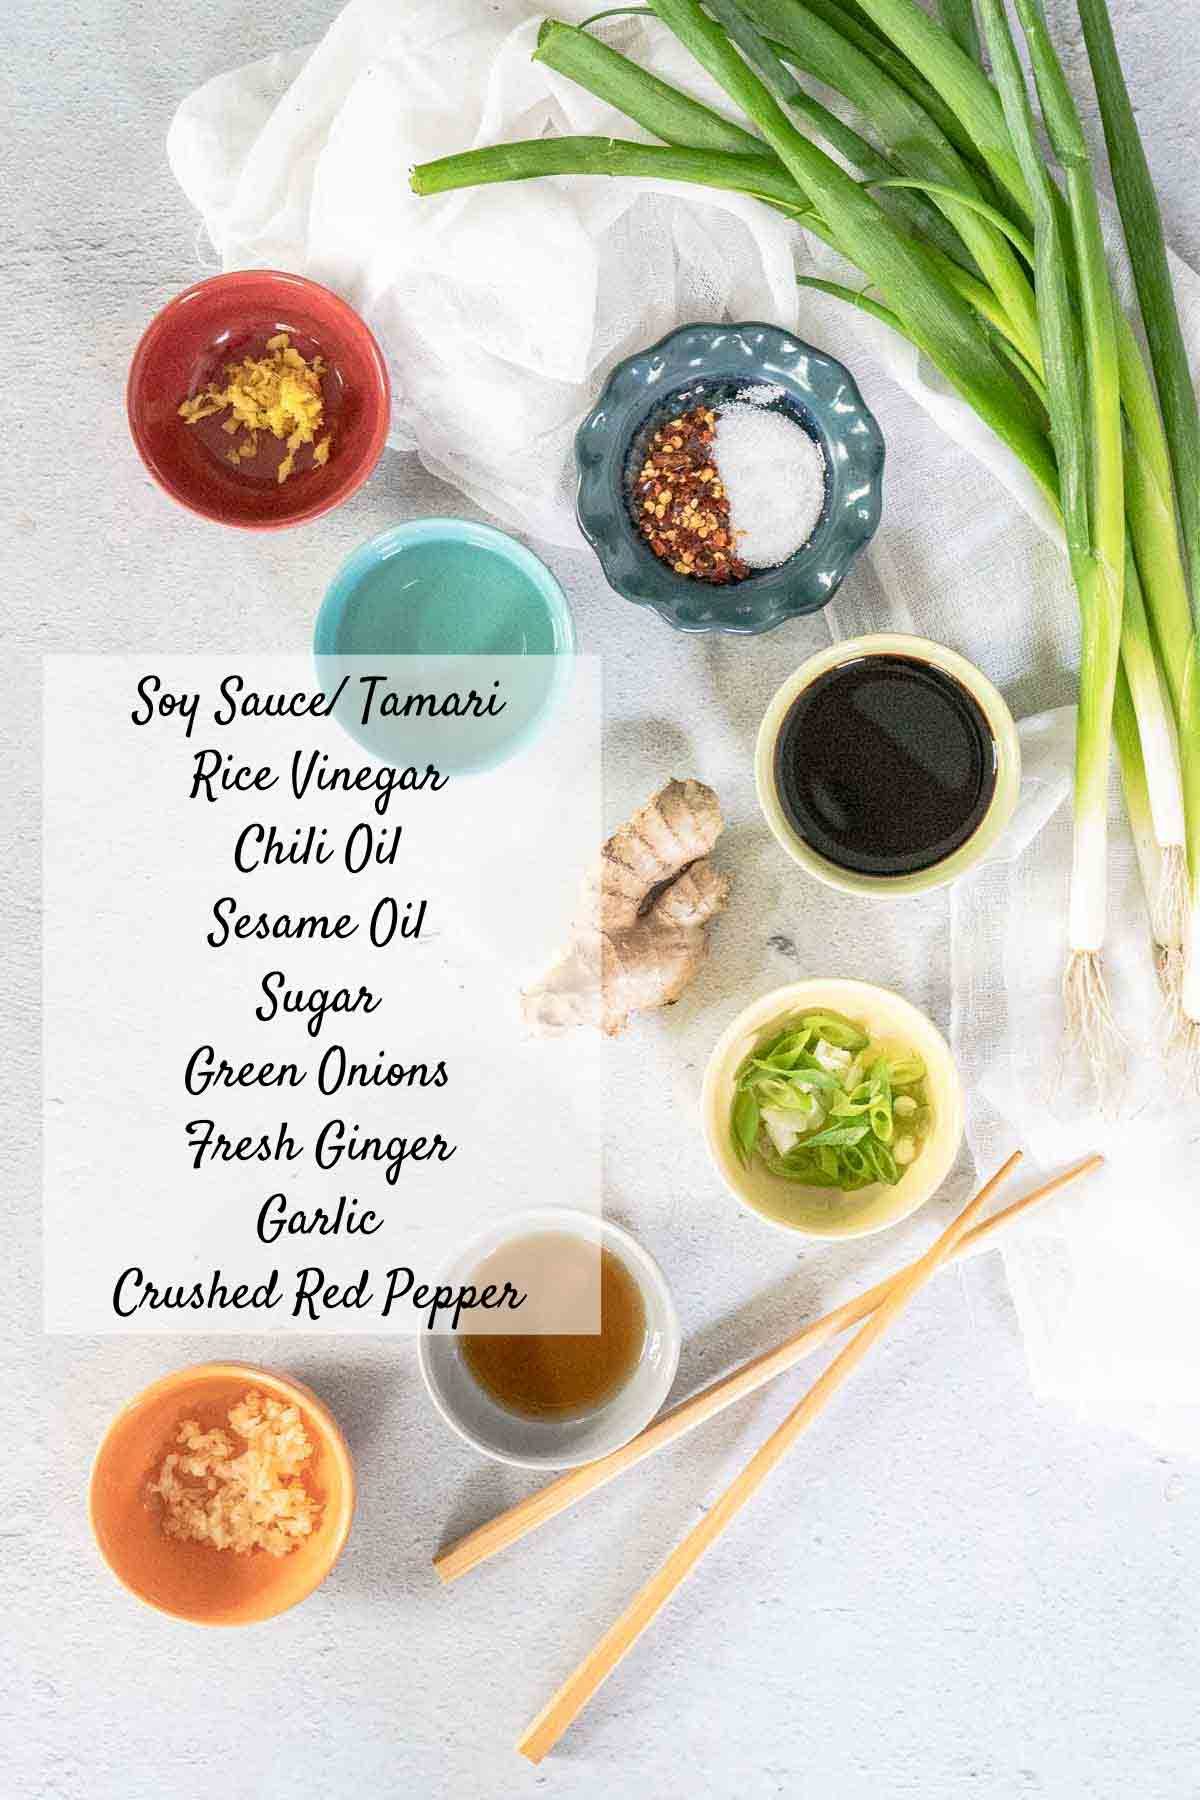 Gyoza sauce ingredients in small bowls on counter